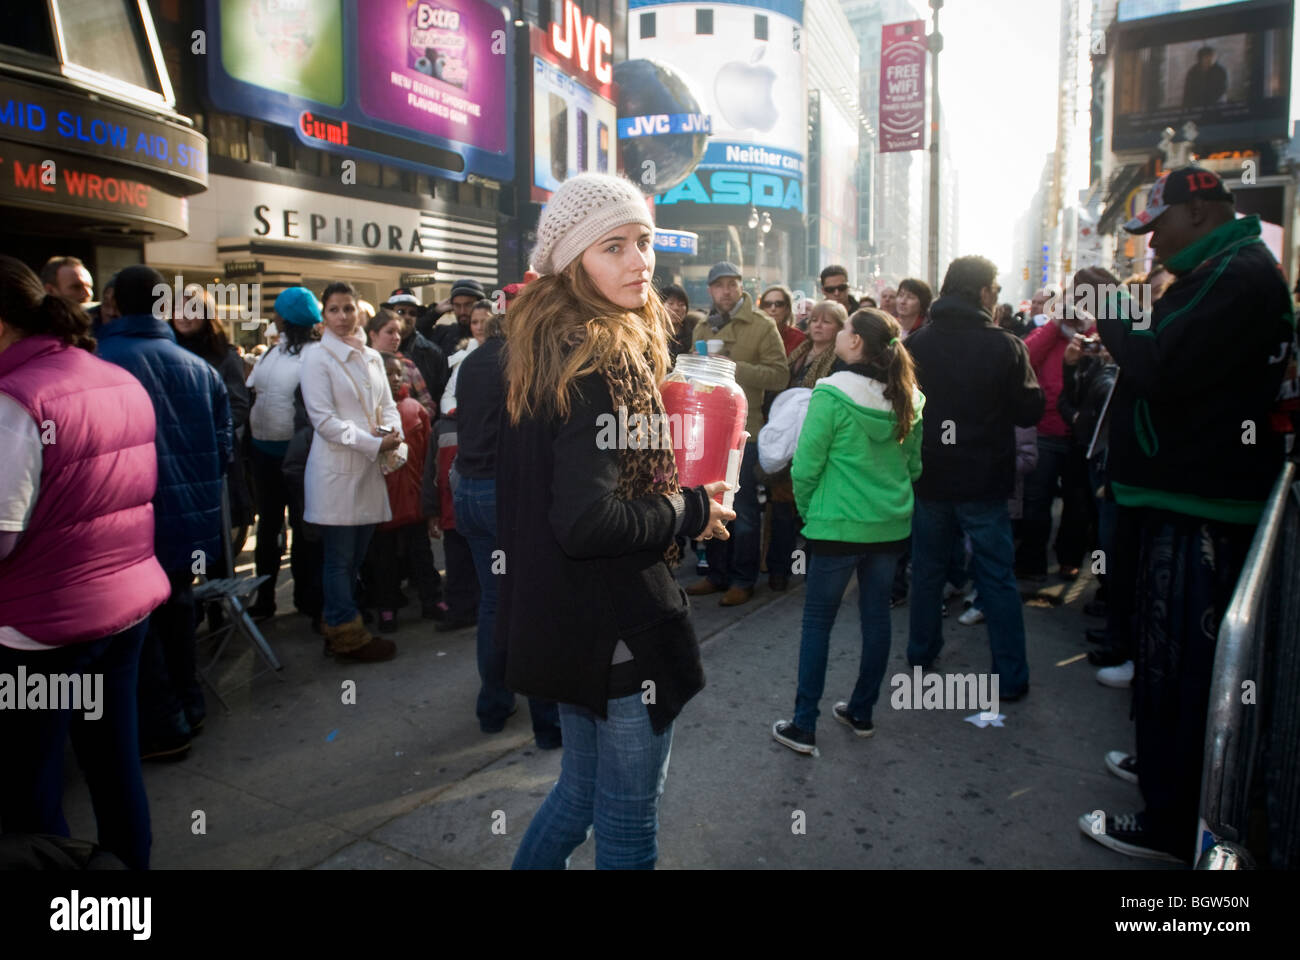 Volunteers from the American Red Cross solicit money for Haiti at 'David Blaine for Haiti in Times Square in - Stock Image